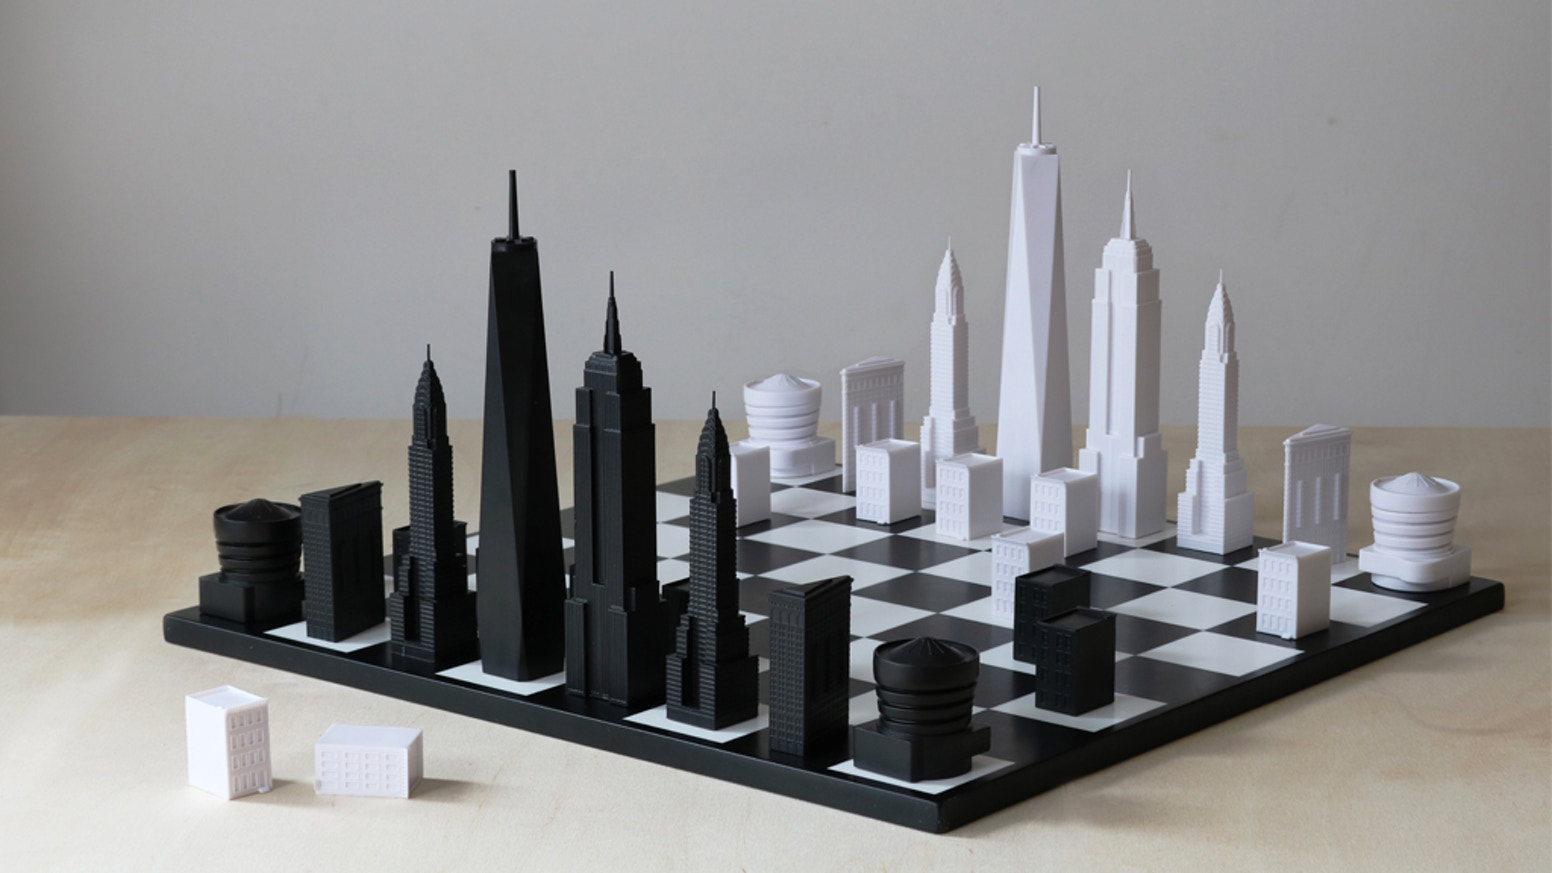 Bringing the iconic architecture of New York City to your chess board